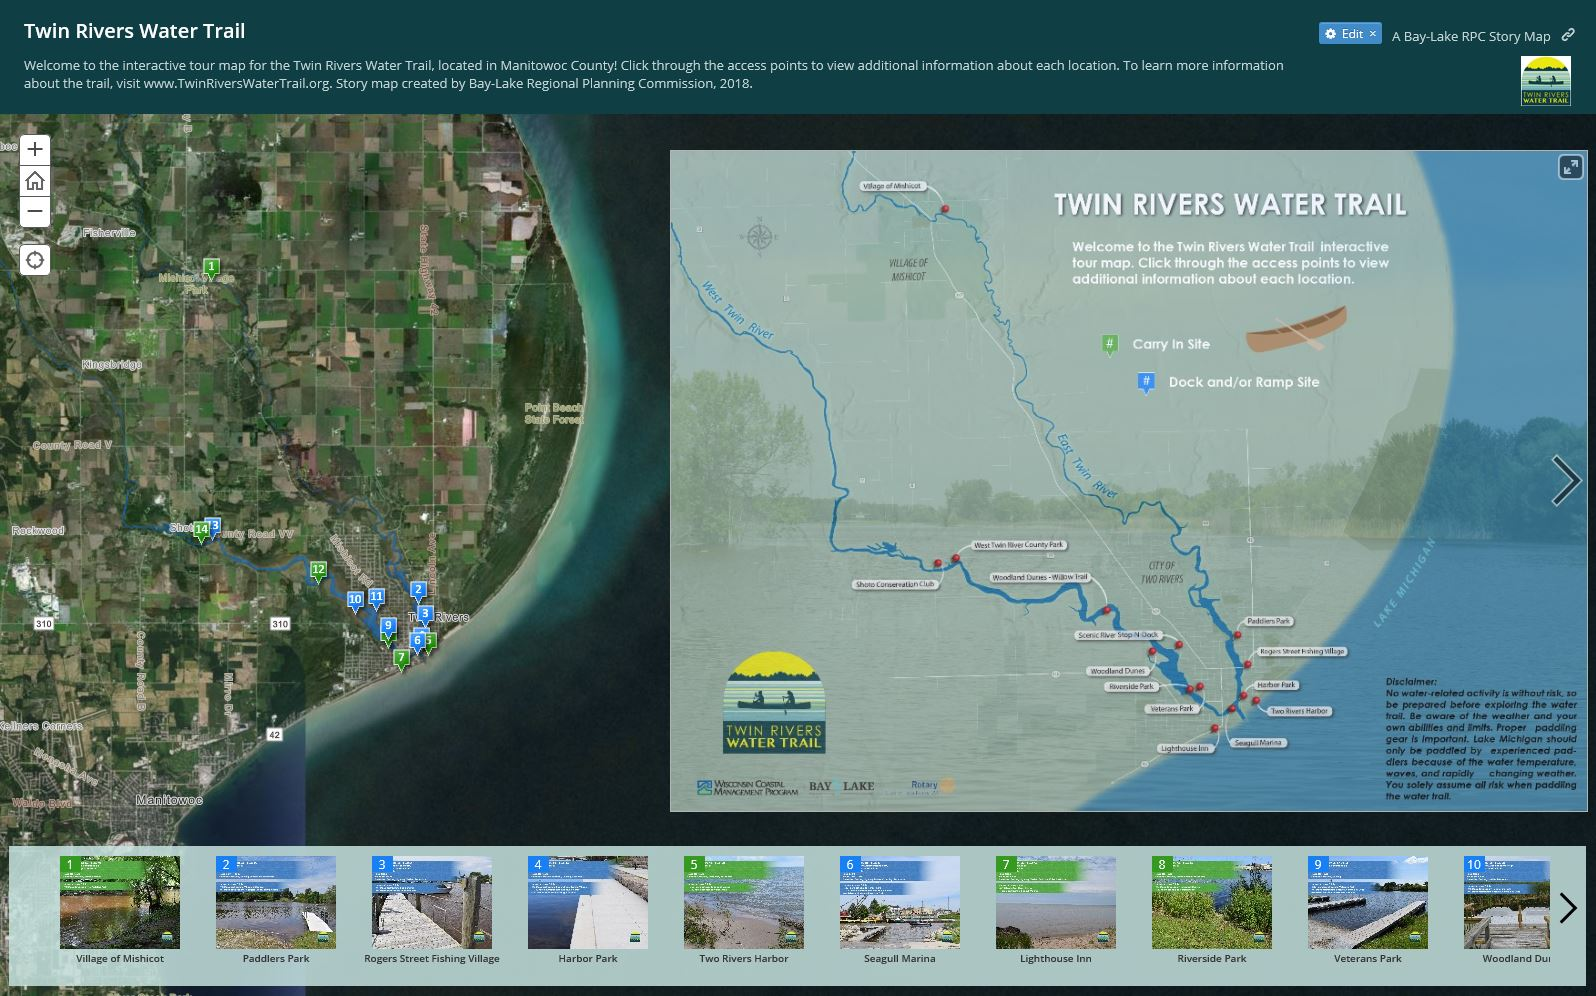 Twin Rivers Water Trail Story Map.JPG